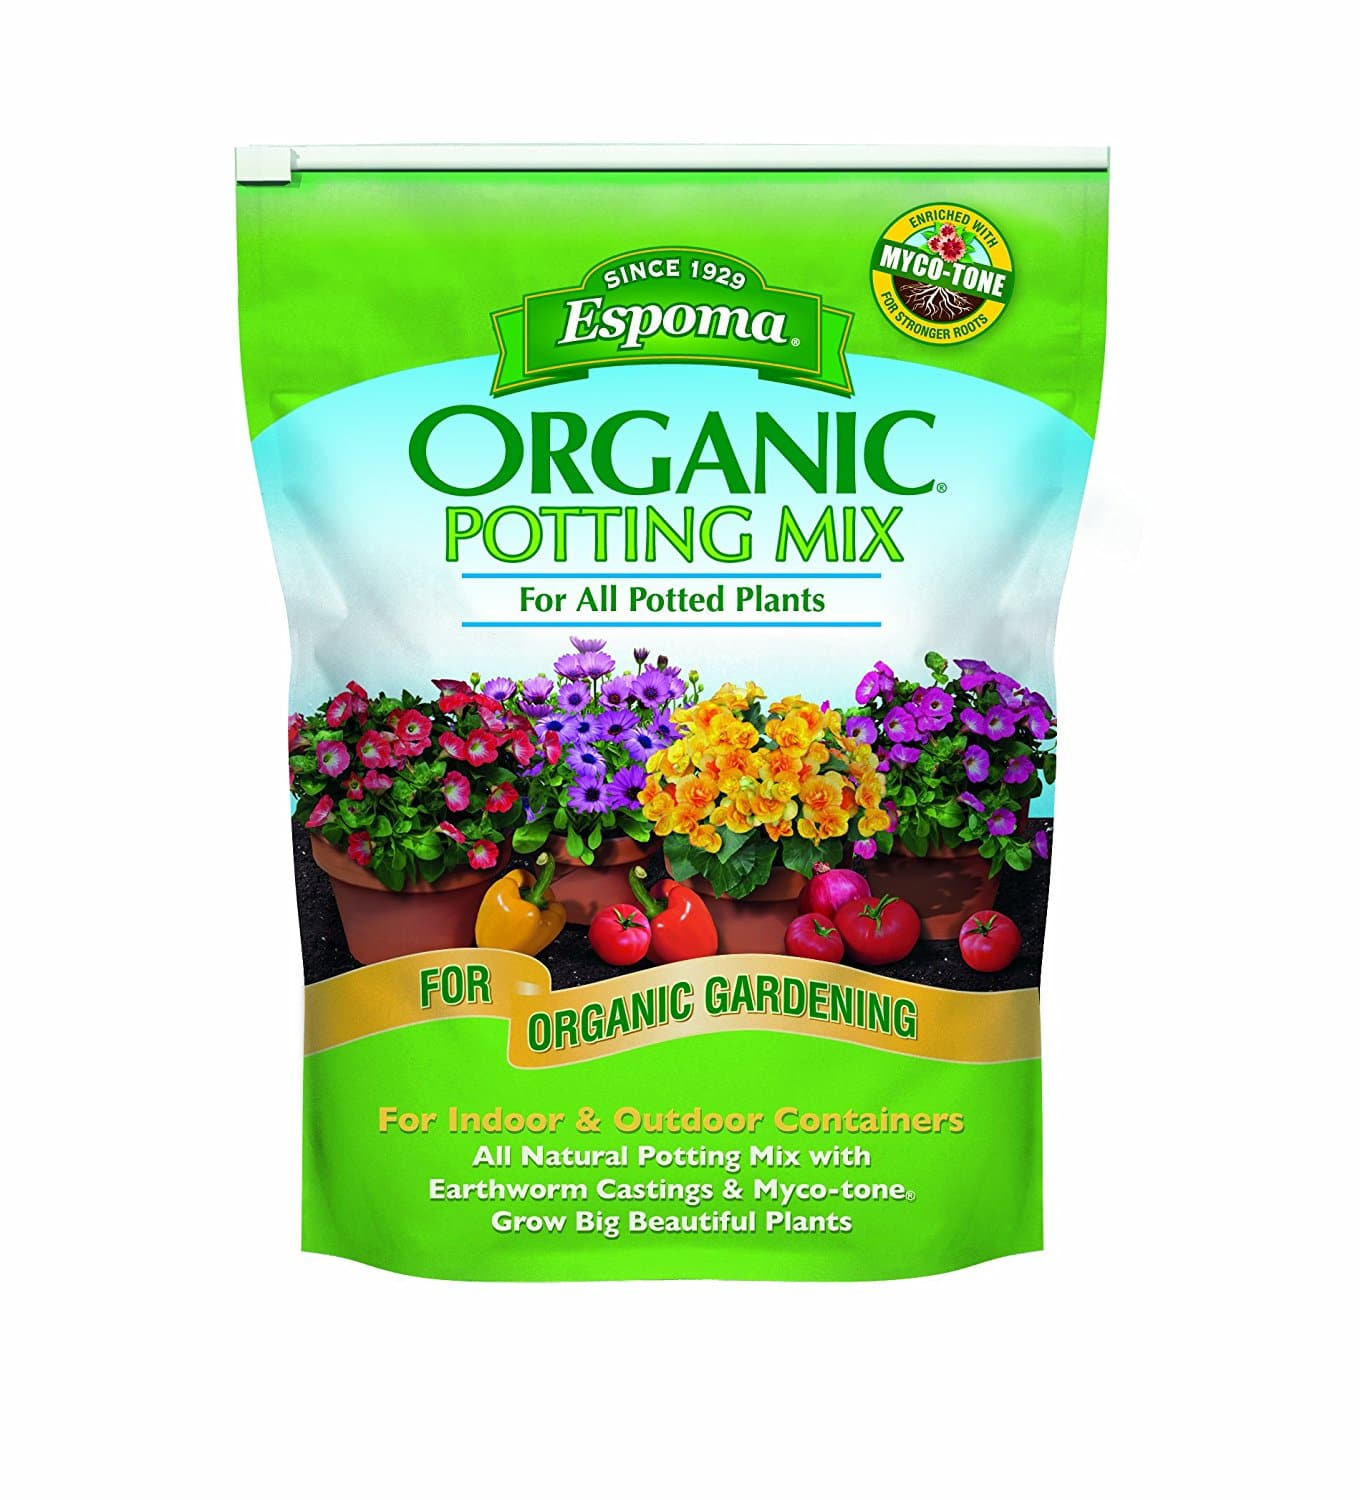 Espoma AP8 8-Quart Organic Potting Mix, best potting soil, best potting mix, soil brands, best potting soil brands, best potting soil brands for vegetables, best soil for potted plants, organic potting soil, best potting soil for indoor plants, best organic potting soil, best potting soil for vegetables, best potting mix for vegetables, organic potting soil reviews, top rated potting soil, soil brand, what is the best potting mix, what is the best potting soil, best price on potting soil, the best potting soil, potting soil reviews, potting soil. best potting soil, well draining potting soil, what is potting soil, best soil for potted plants, what is potting soil made out of, dirt for plants, sterile potting soil, soil for indoor plants, when to use potting soil, indoor potting soil vs outdoor potting soil, high quality potting soil, best potting soil for indoor plants, acidic potting soil, what is potting mix, potting soul, best potting mix, potting mix vs potting soil, best potting soil for flowers